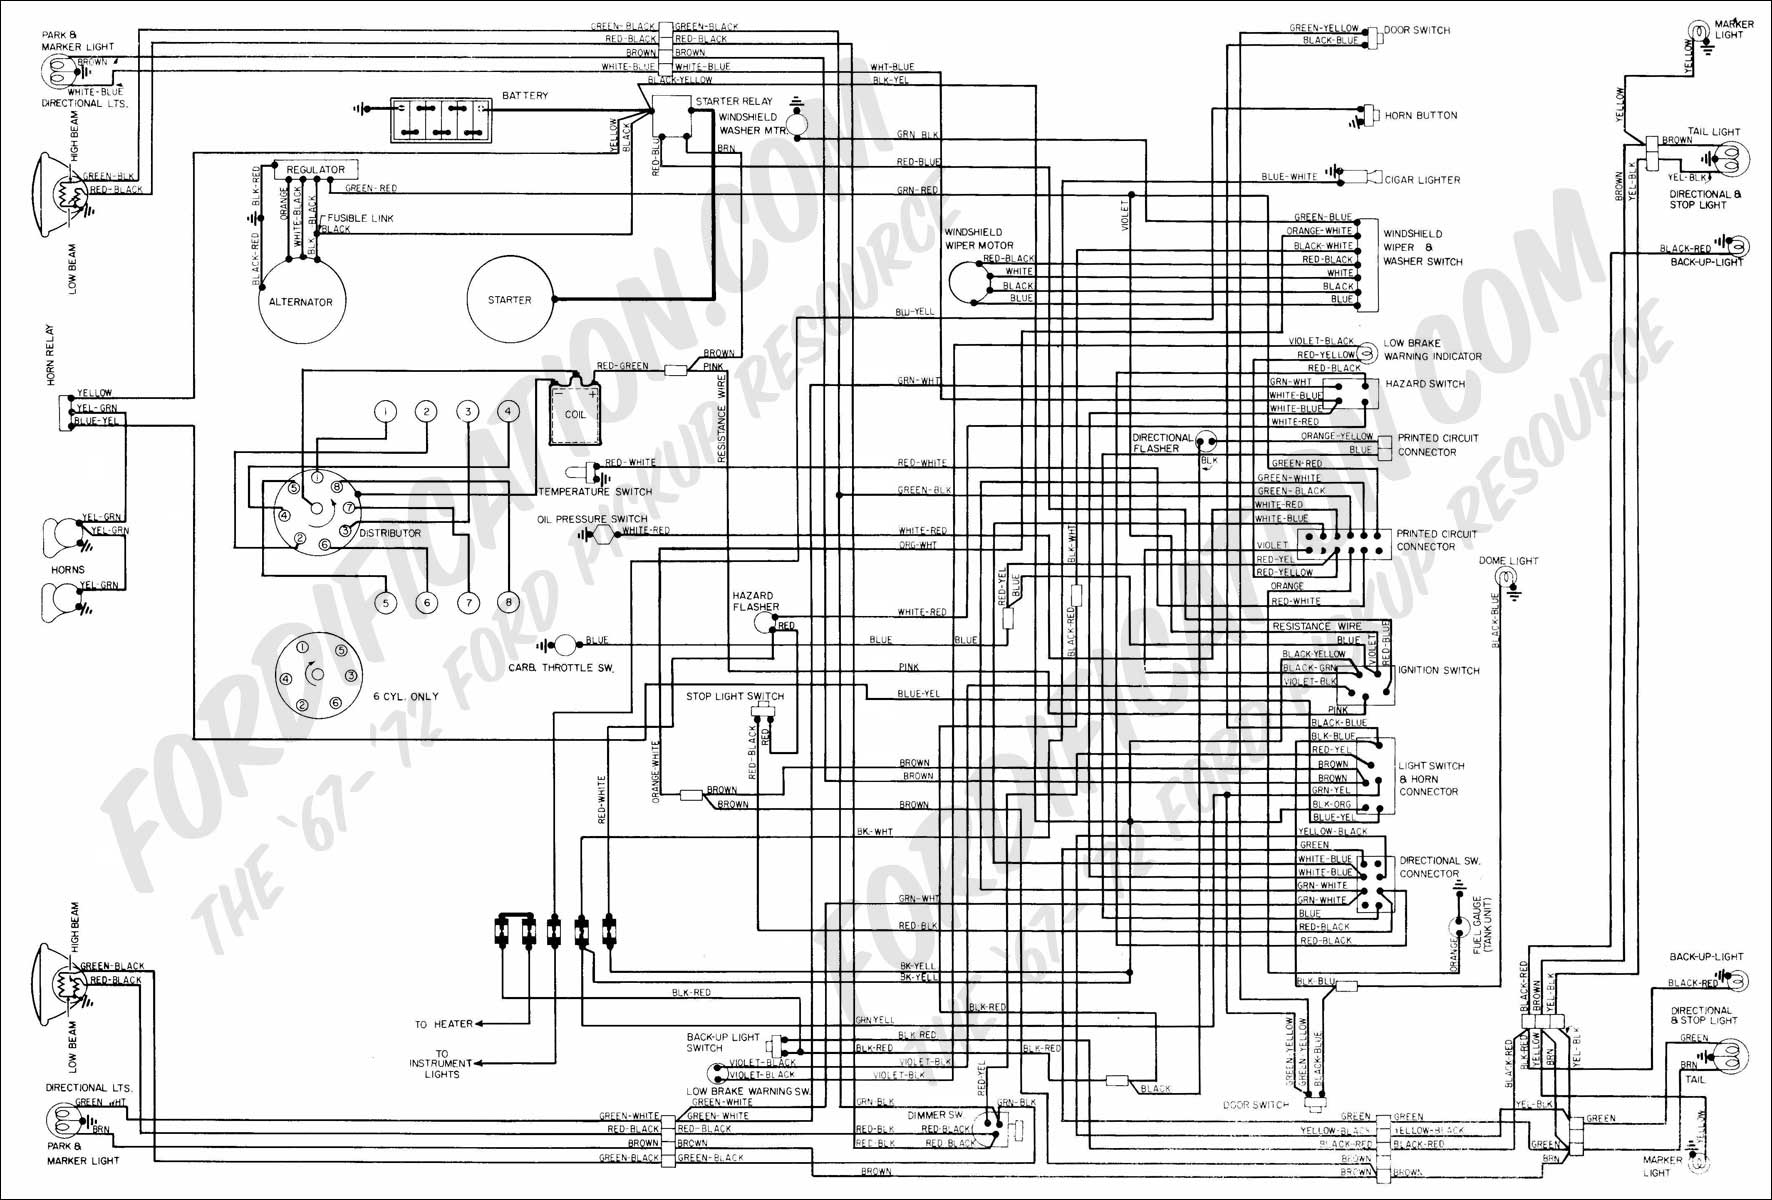 72 chevy starter wiring diagram. 72. discover your wiring diagram, Wiring diagram